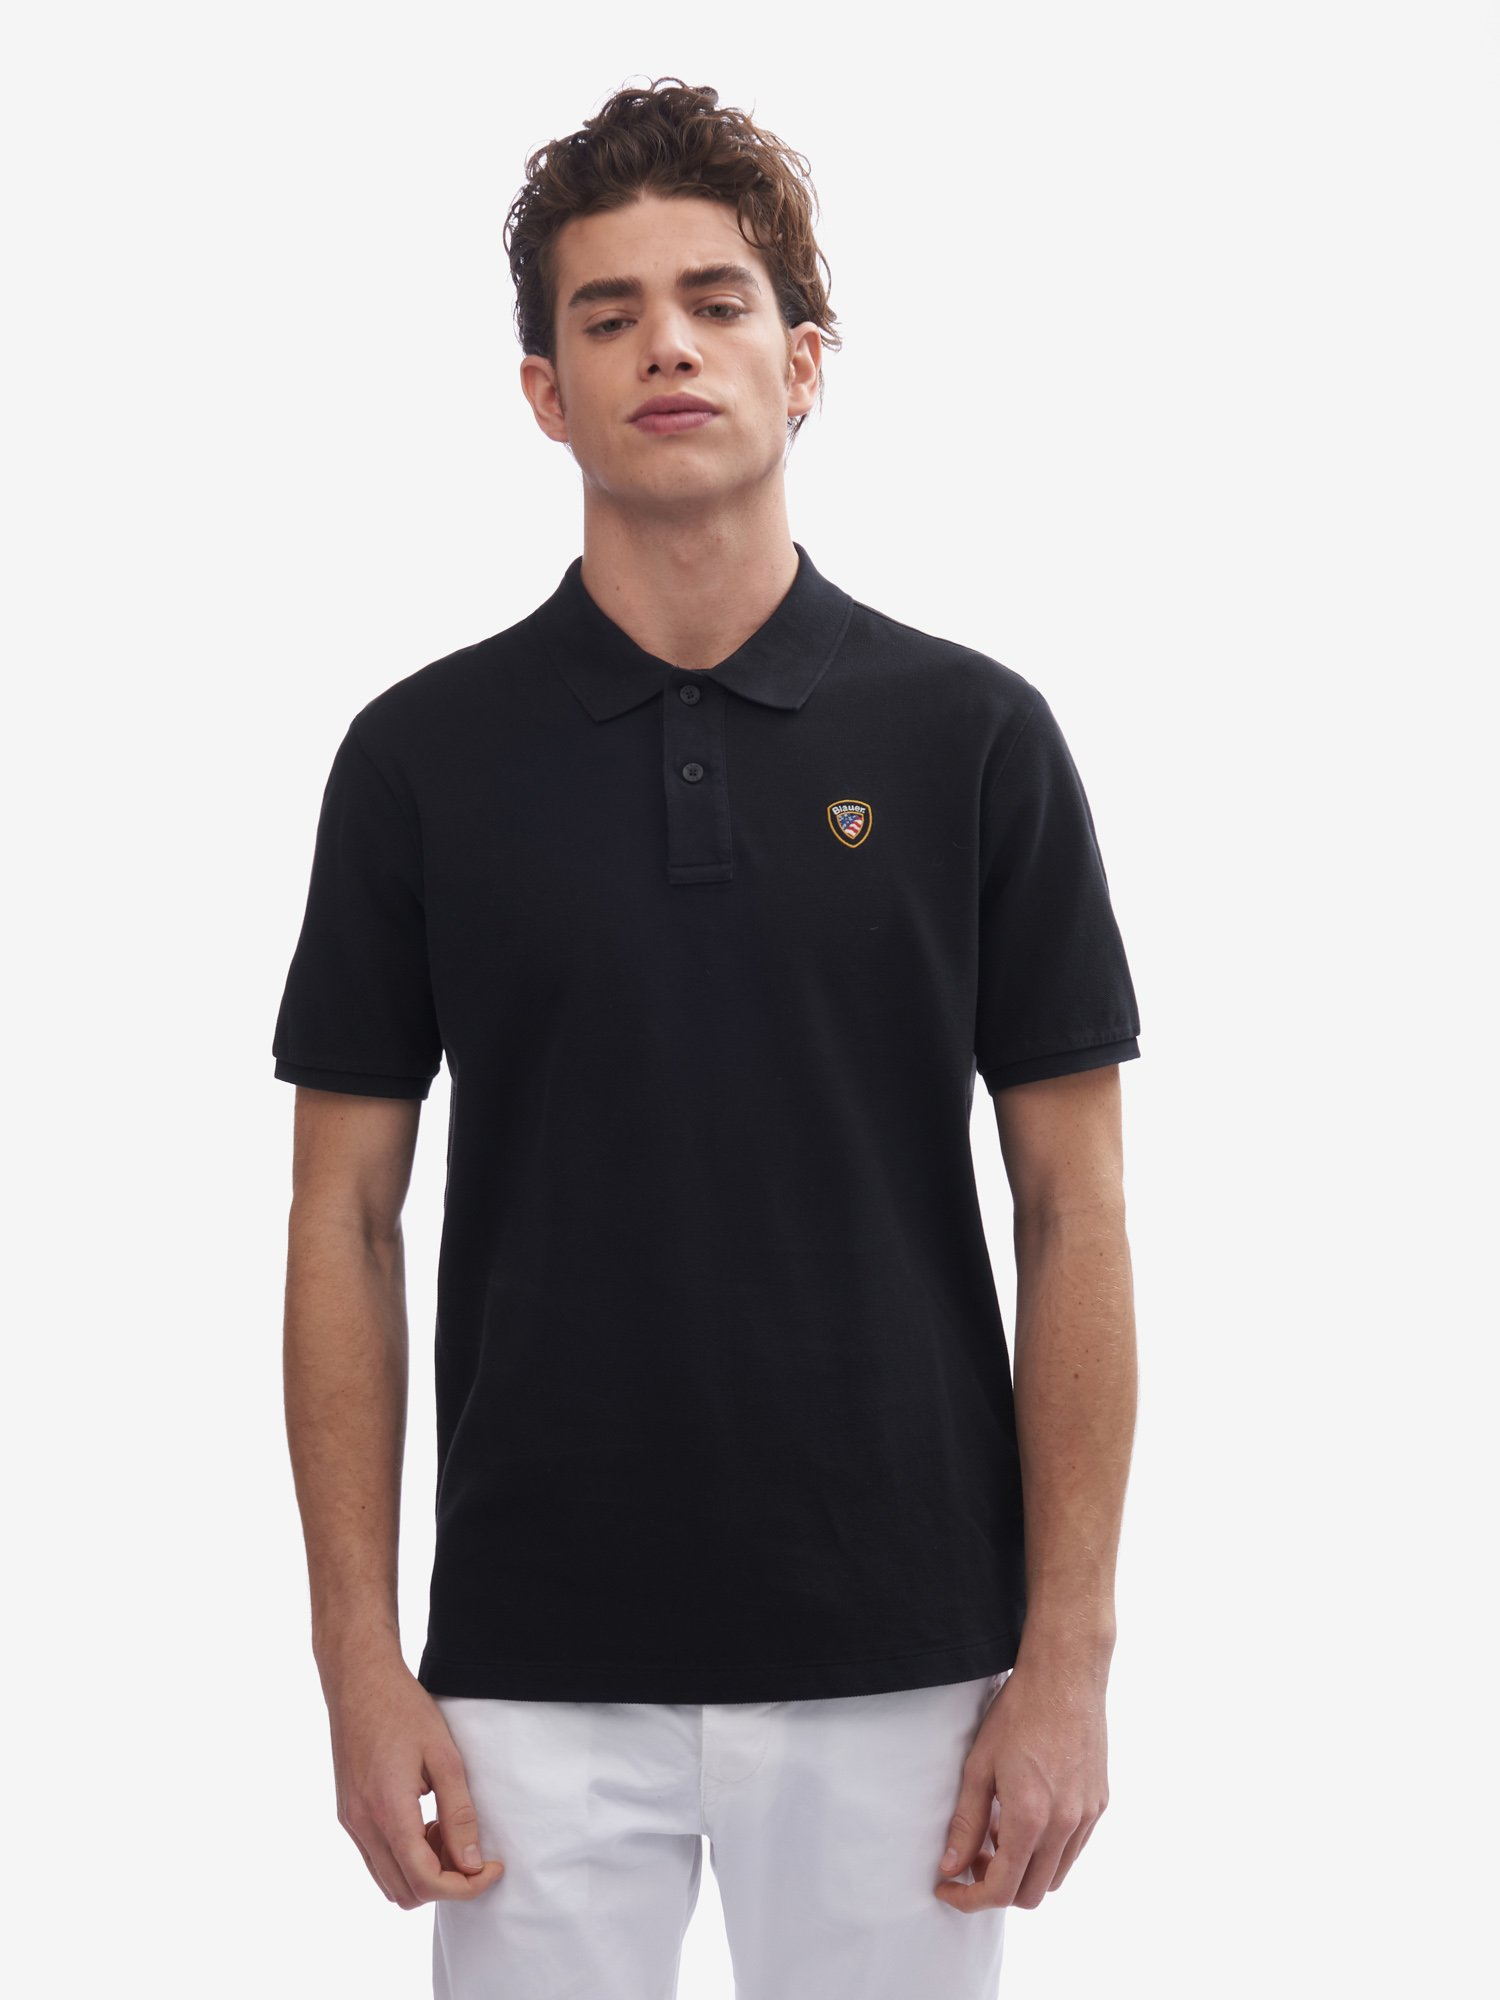 SHORT SLEEVE BLAUER POLO SHIRT - Blauer